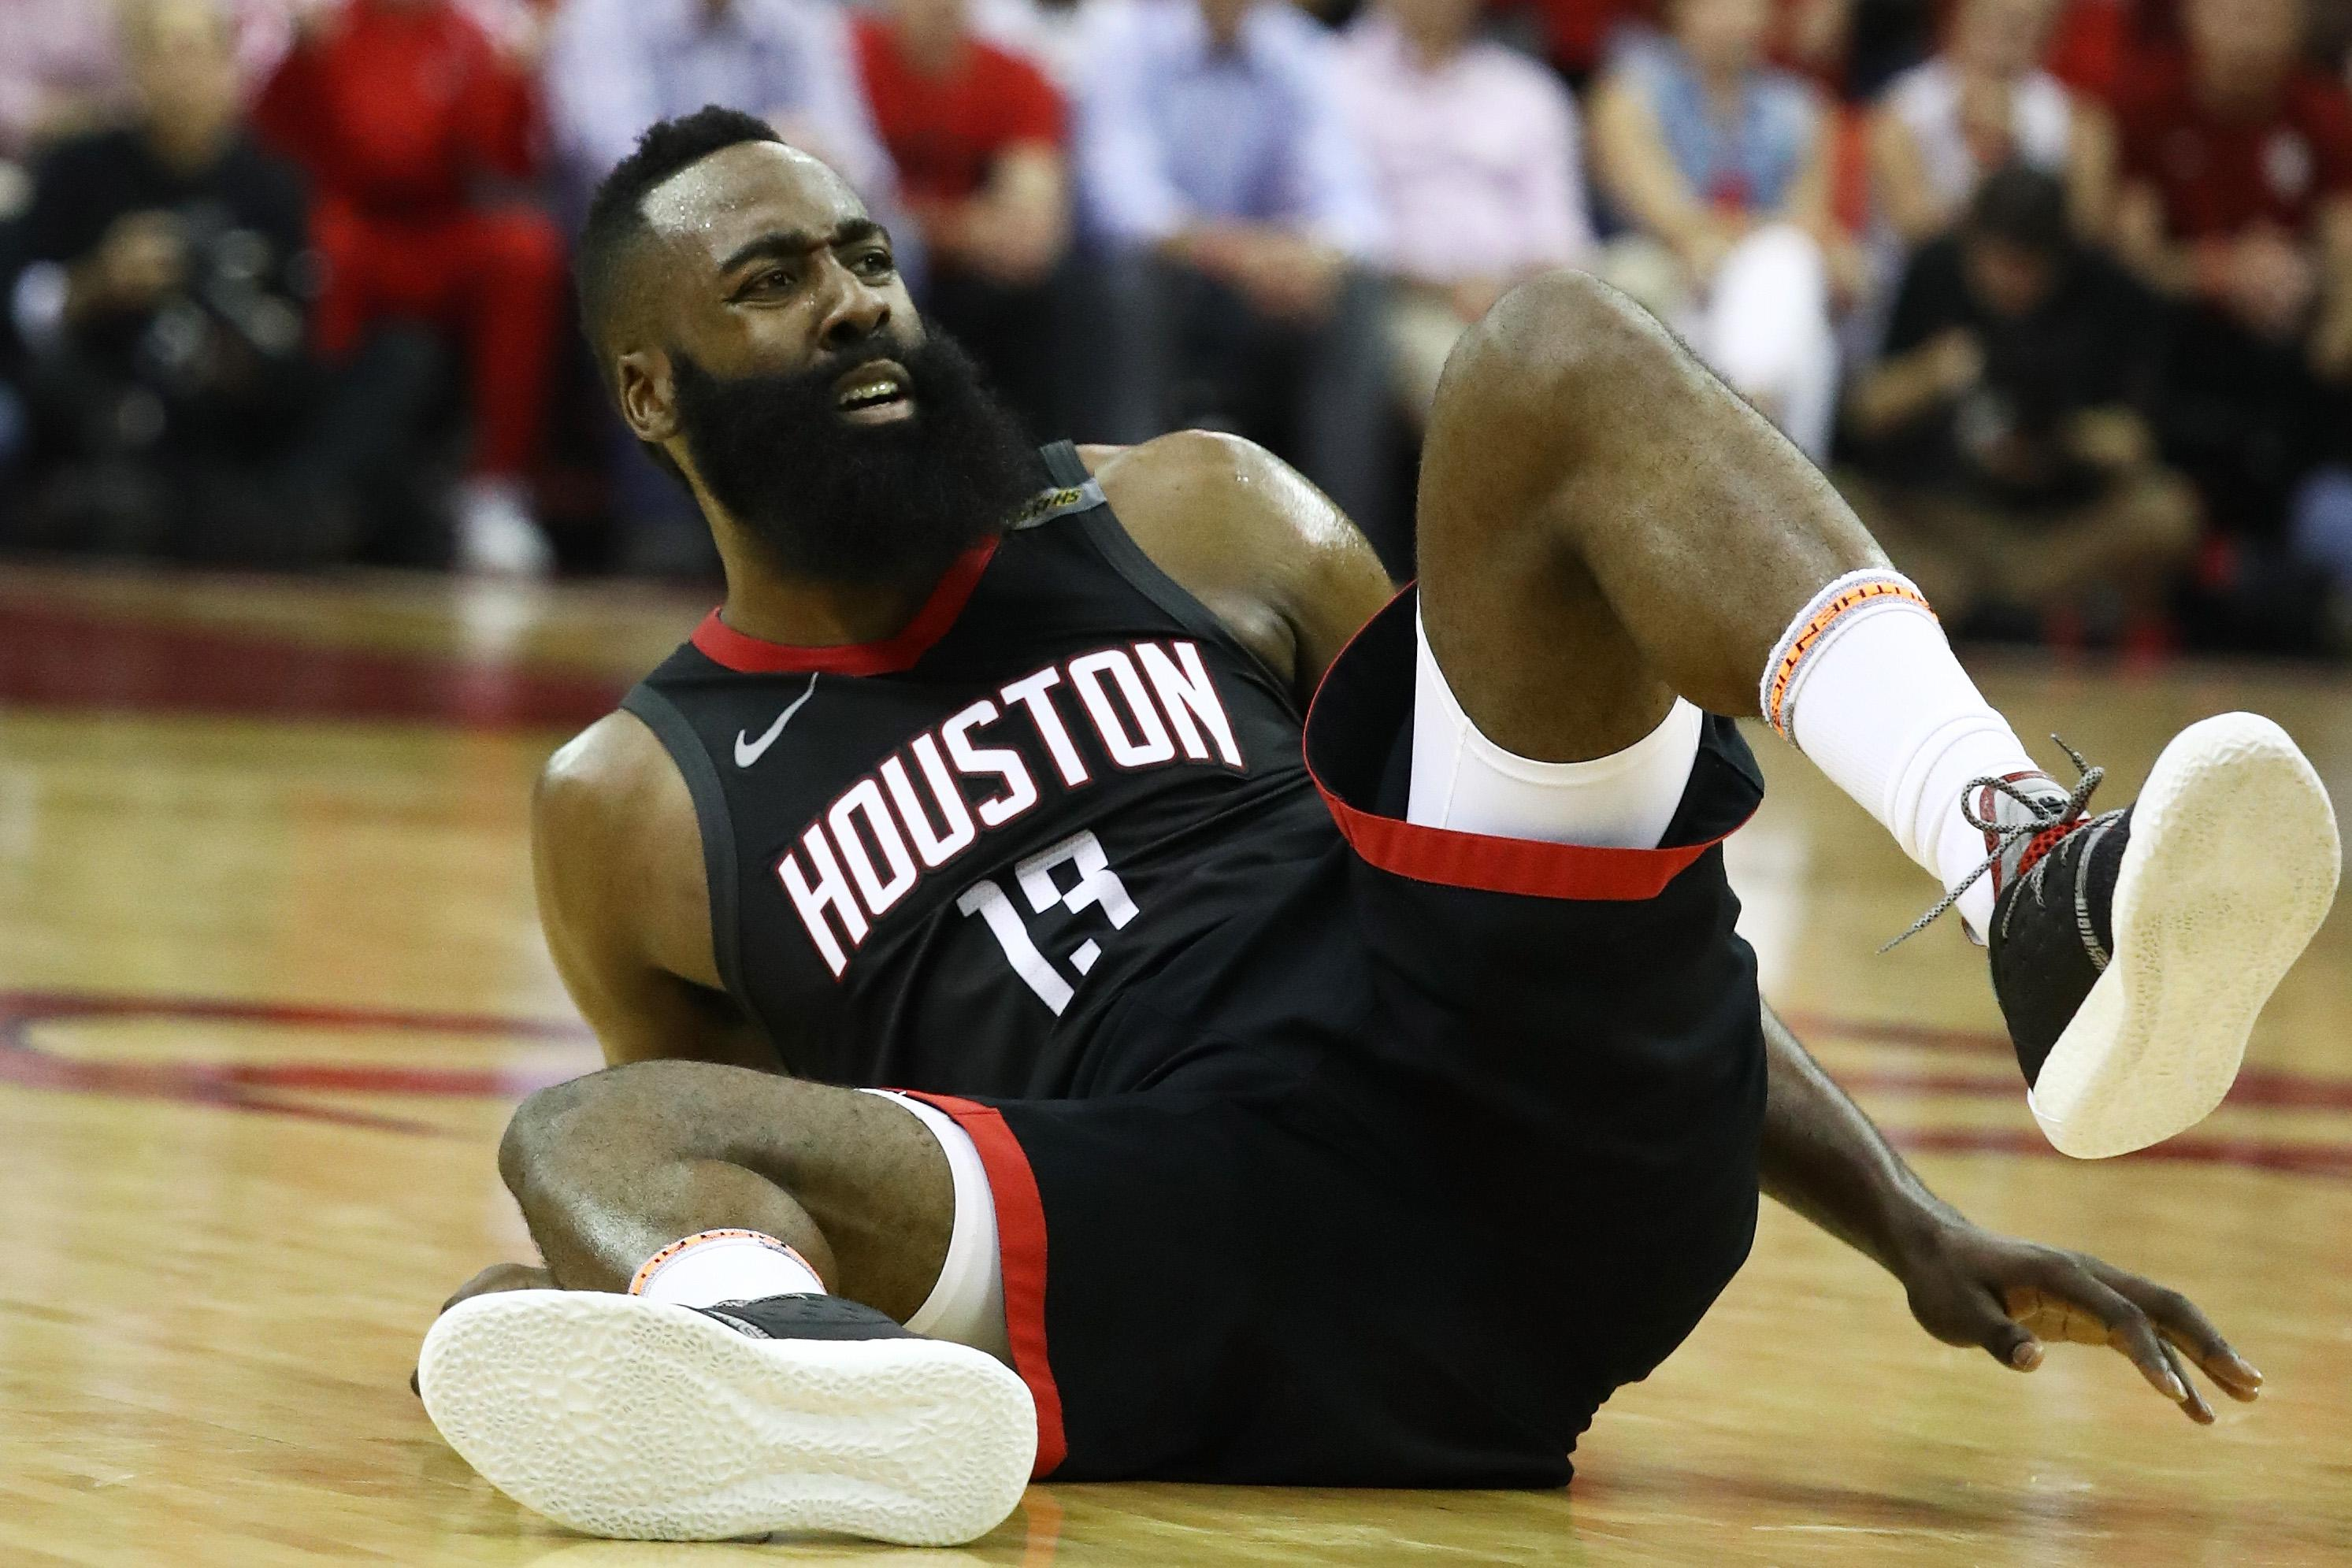 HOUSTON, TX - MAY 28:  James Harden #13 of the Houston Rockets reacts in the second quarter of Game Seven of the Western Conference Finals of the 2018 NBA Playoffs at Toyota Center against the Golden State Warriors on May 28, 2018 in Houston, Texas. NOTE TO USER: User expressly acknowledges and agrees that, by downloading and or using this photograph, User is consenting to the terms and conditions of the Getty Images License Agreement.  (Photo by Ronald Martinez/Getty Images)